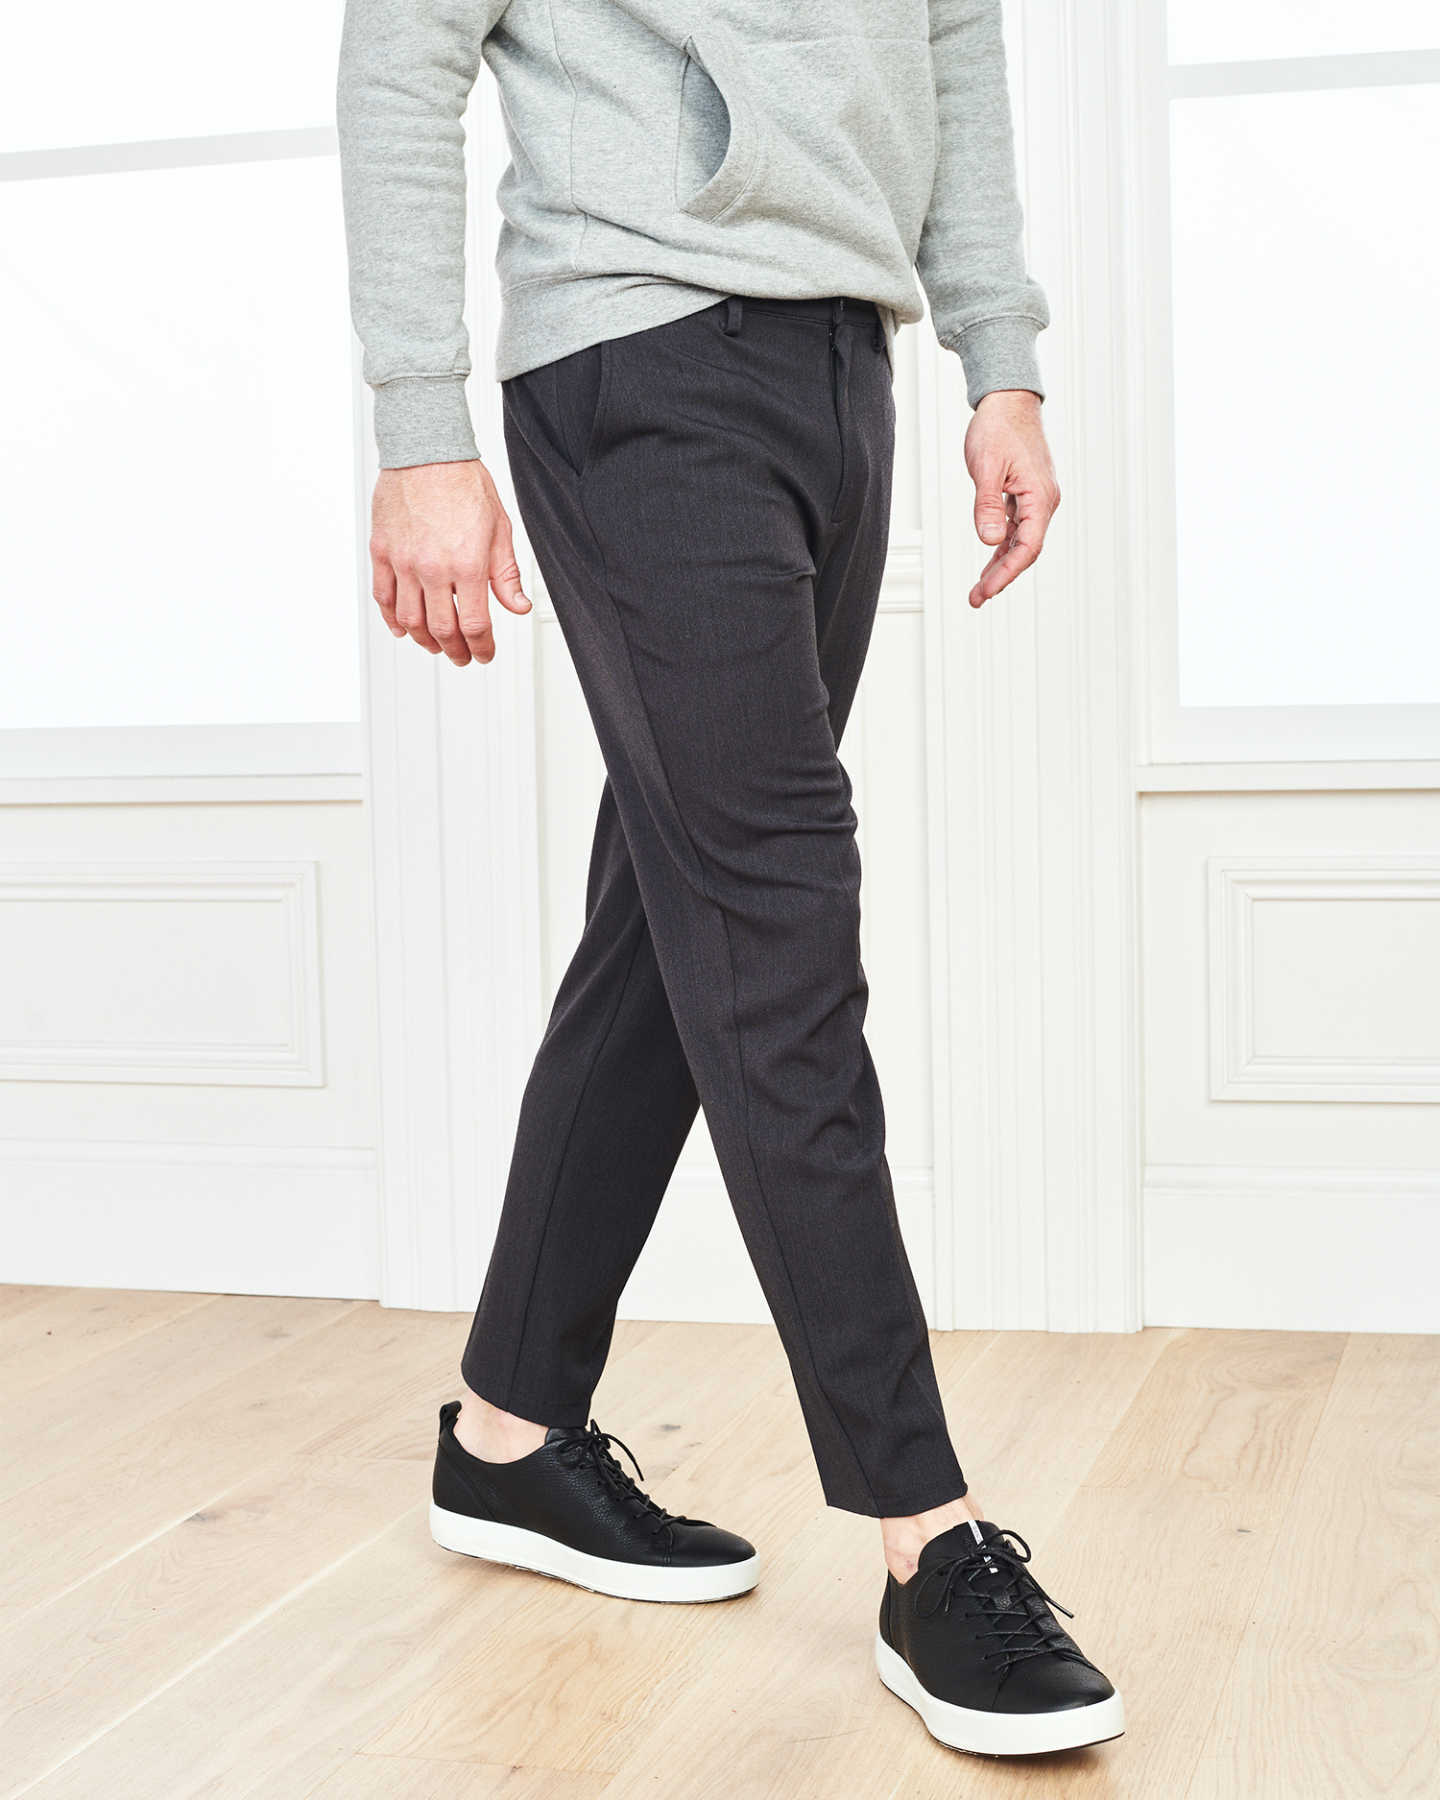 Ultra-Stretch 24/7 Smart Pant - Dark Charcoal